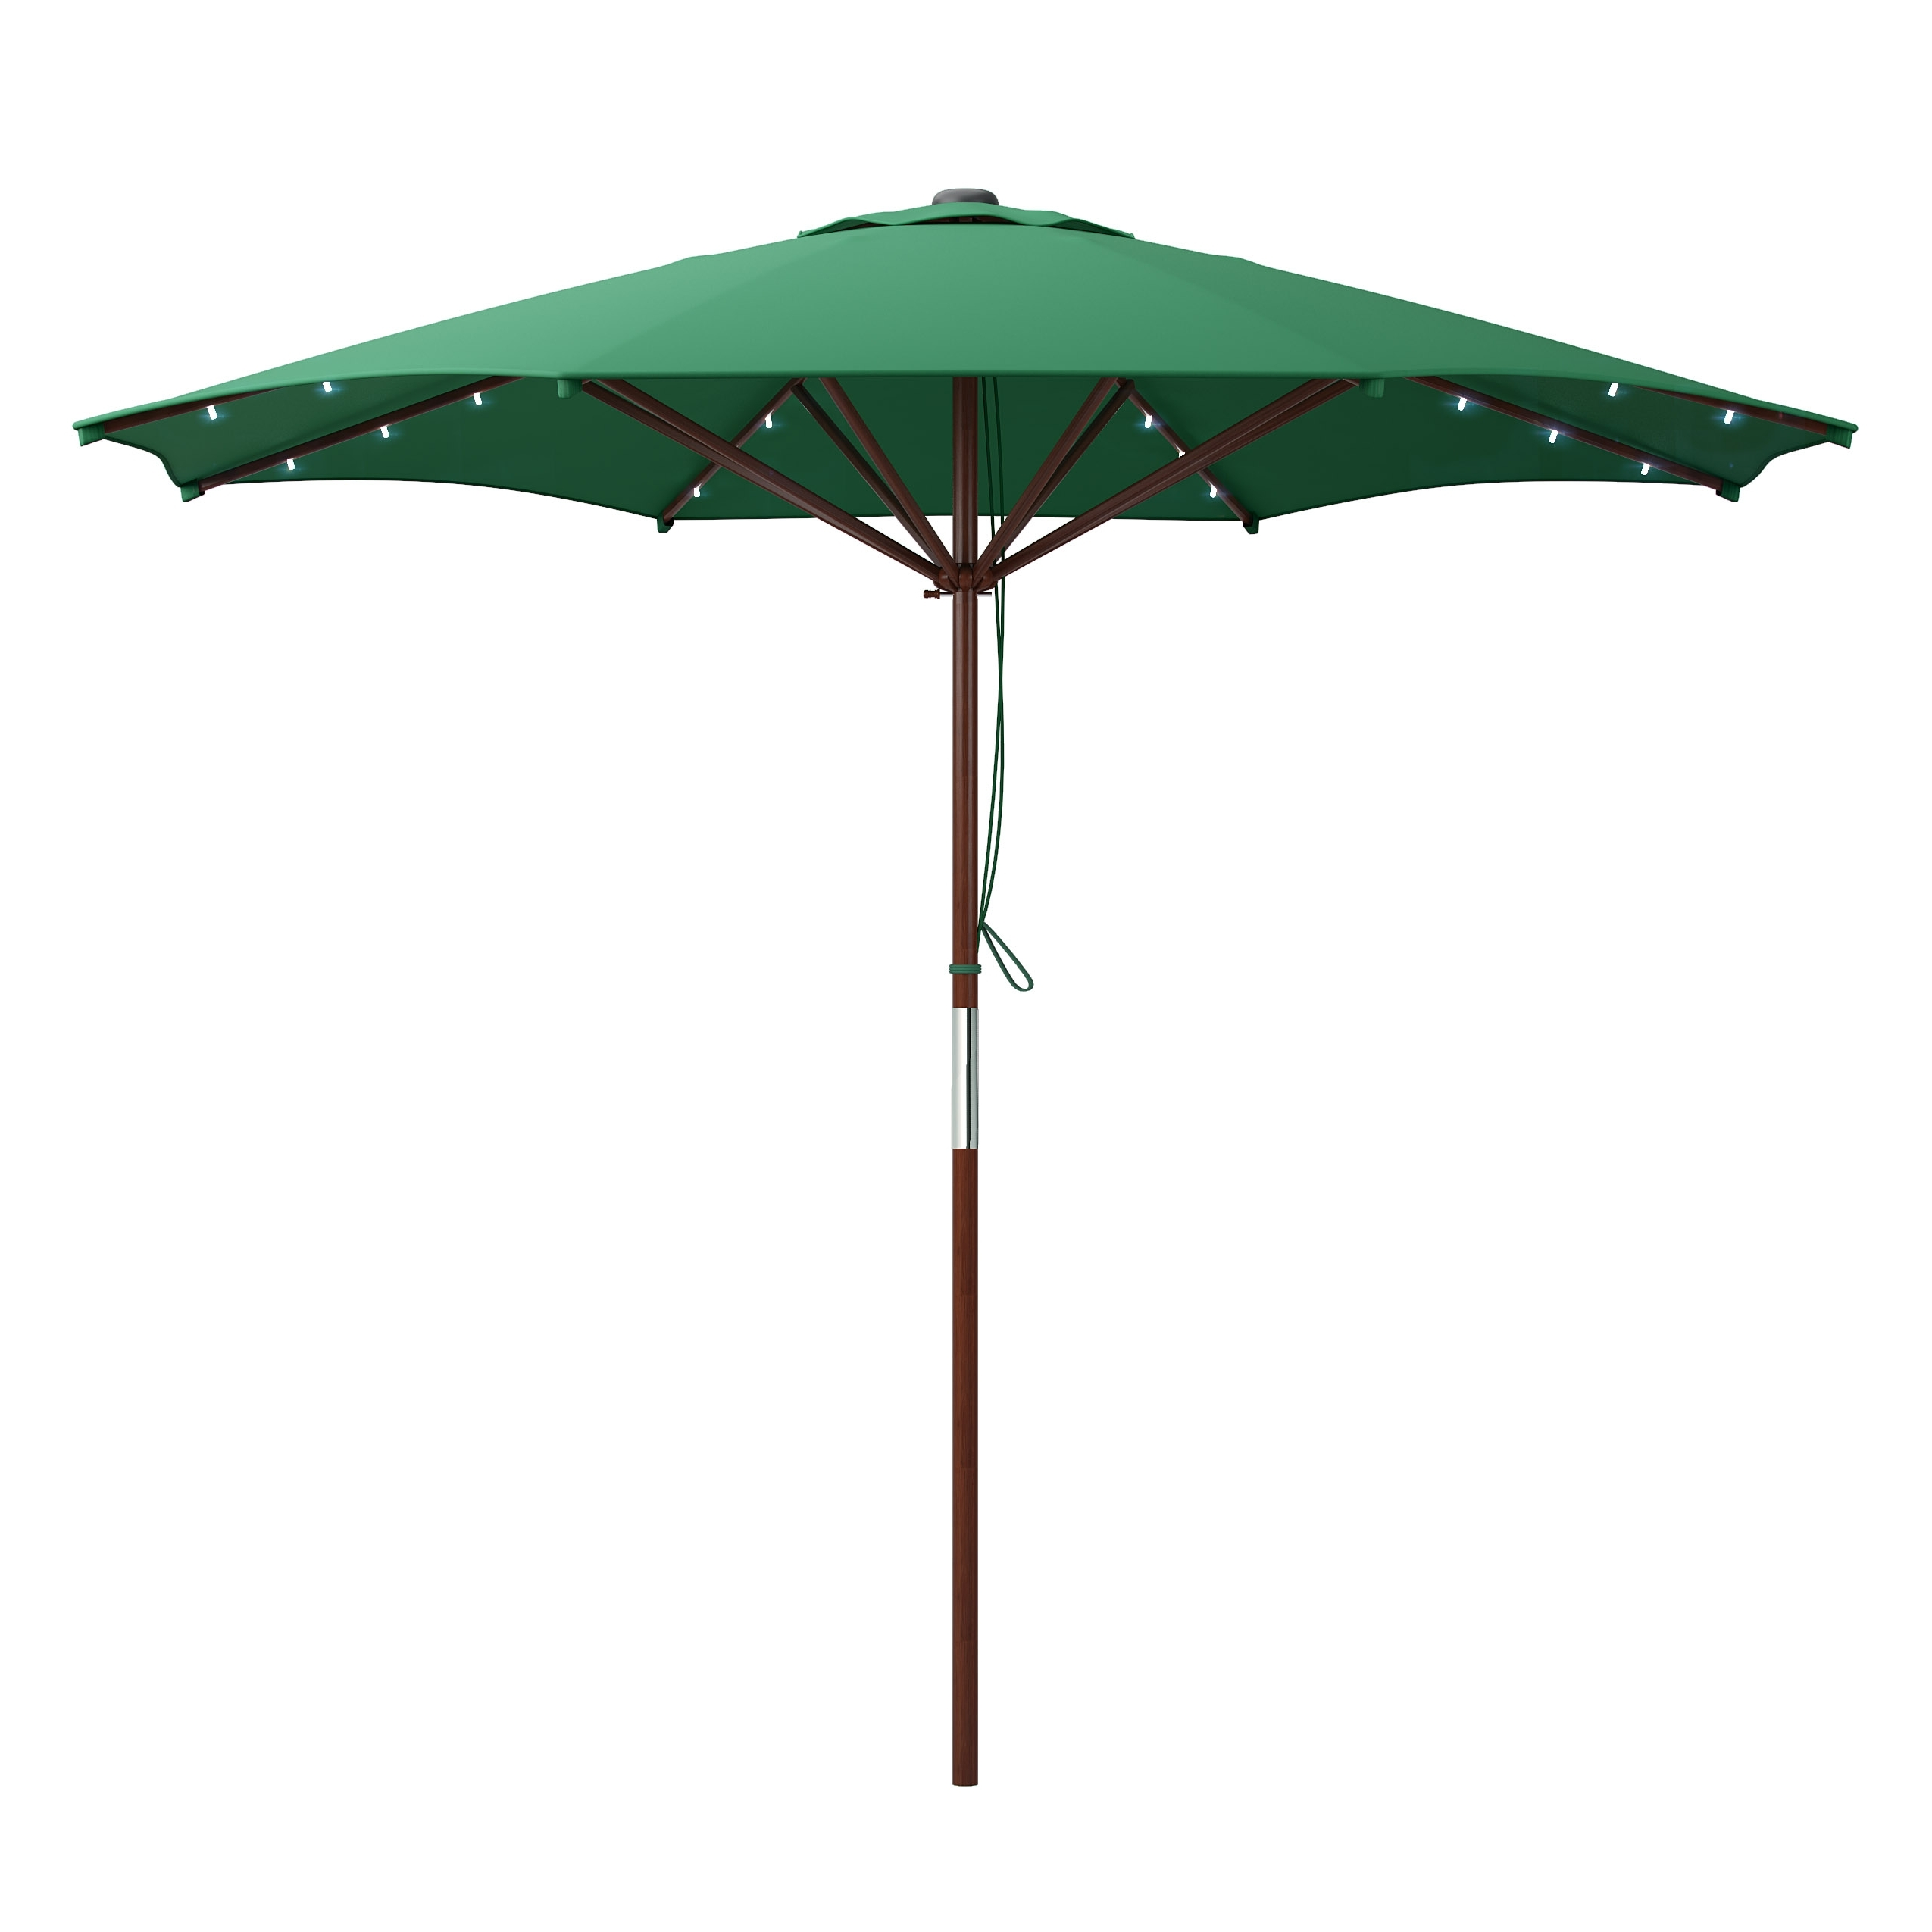 Well Liked Patio Umbrellas With Solar Led Lights Inside Green Patio Umbrella With Solar Power Led Lights (View 17 of 20)